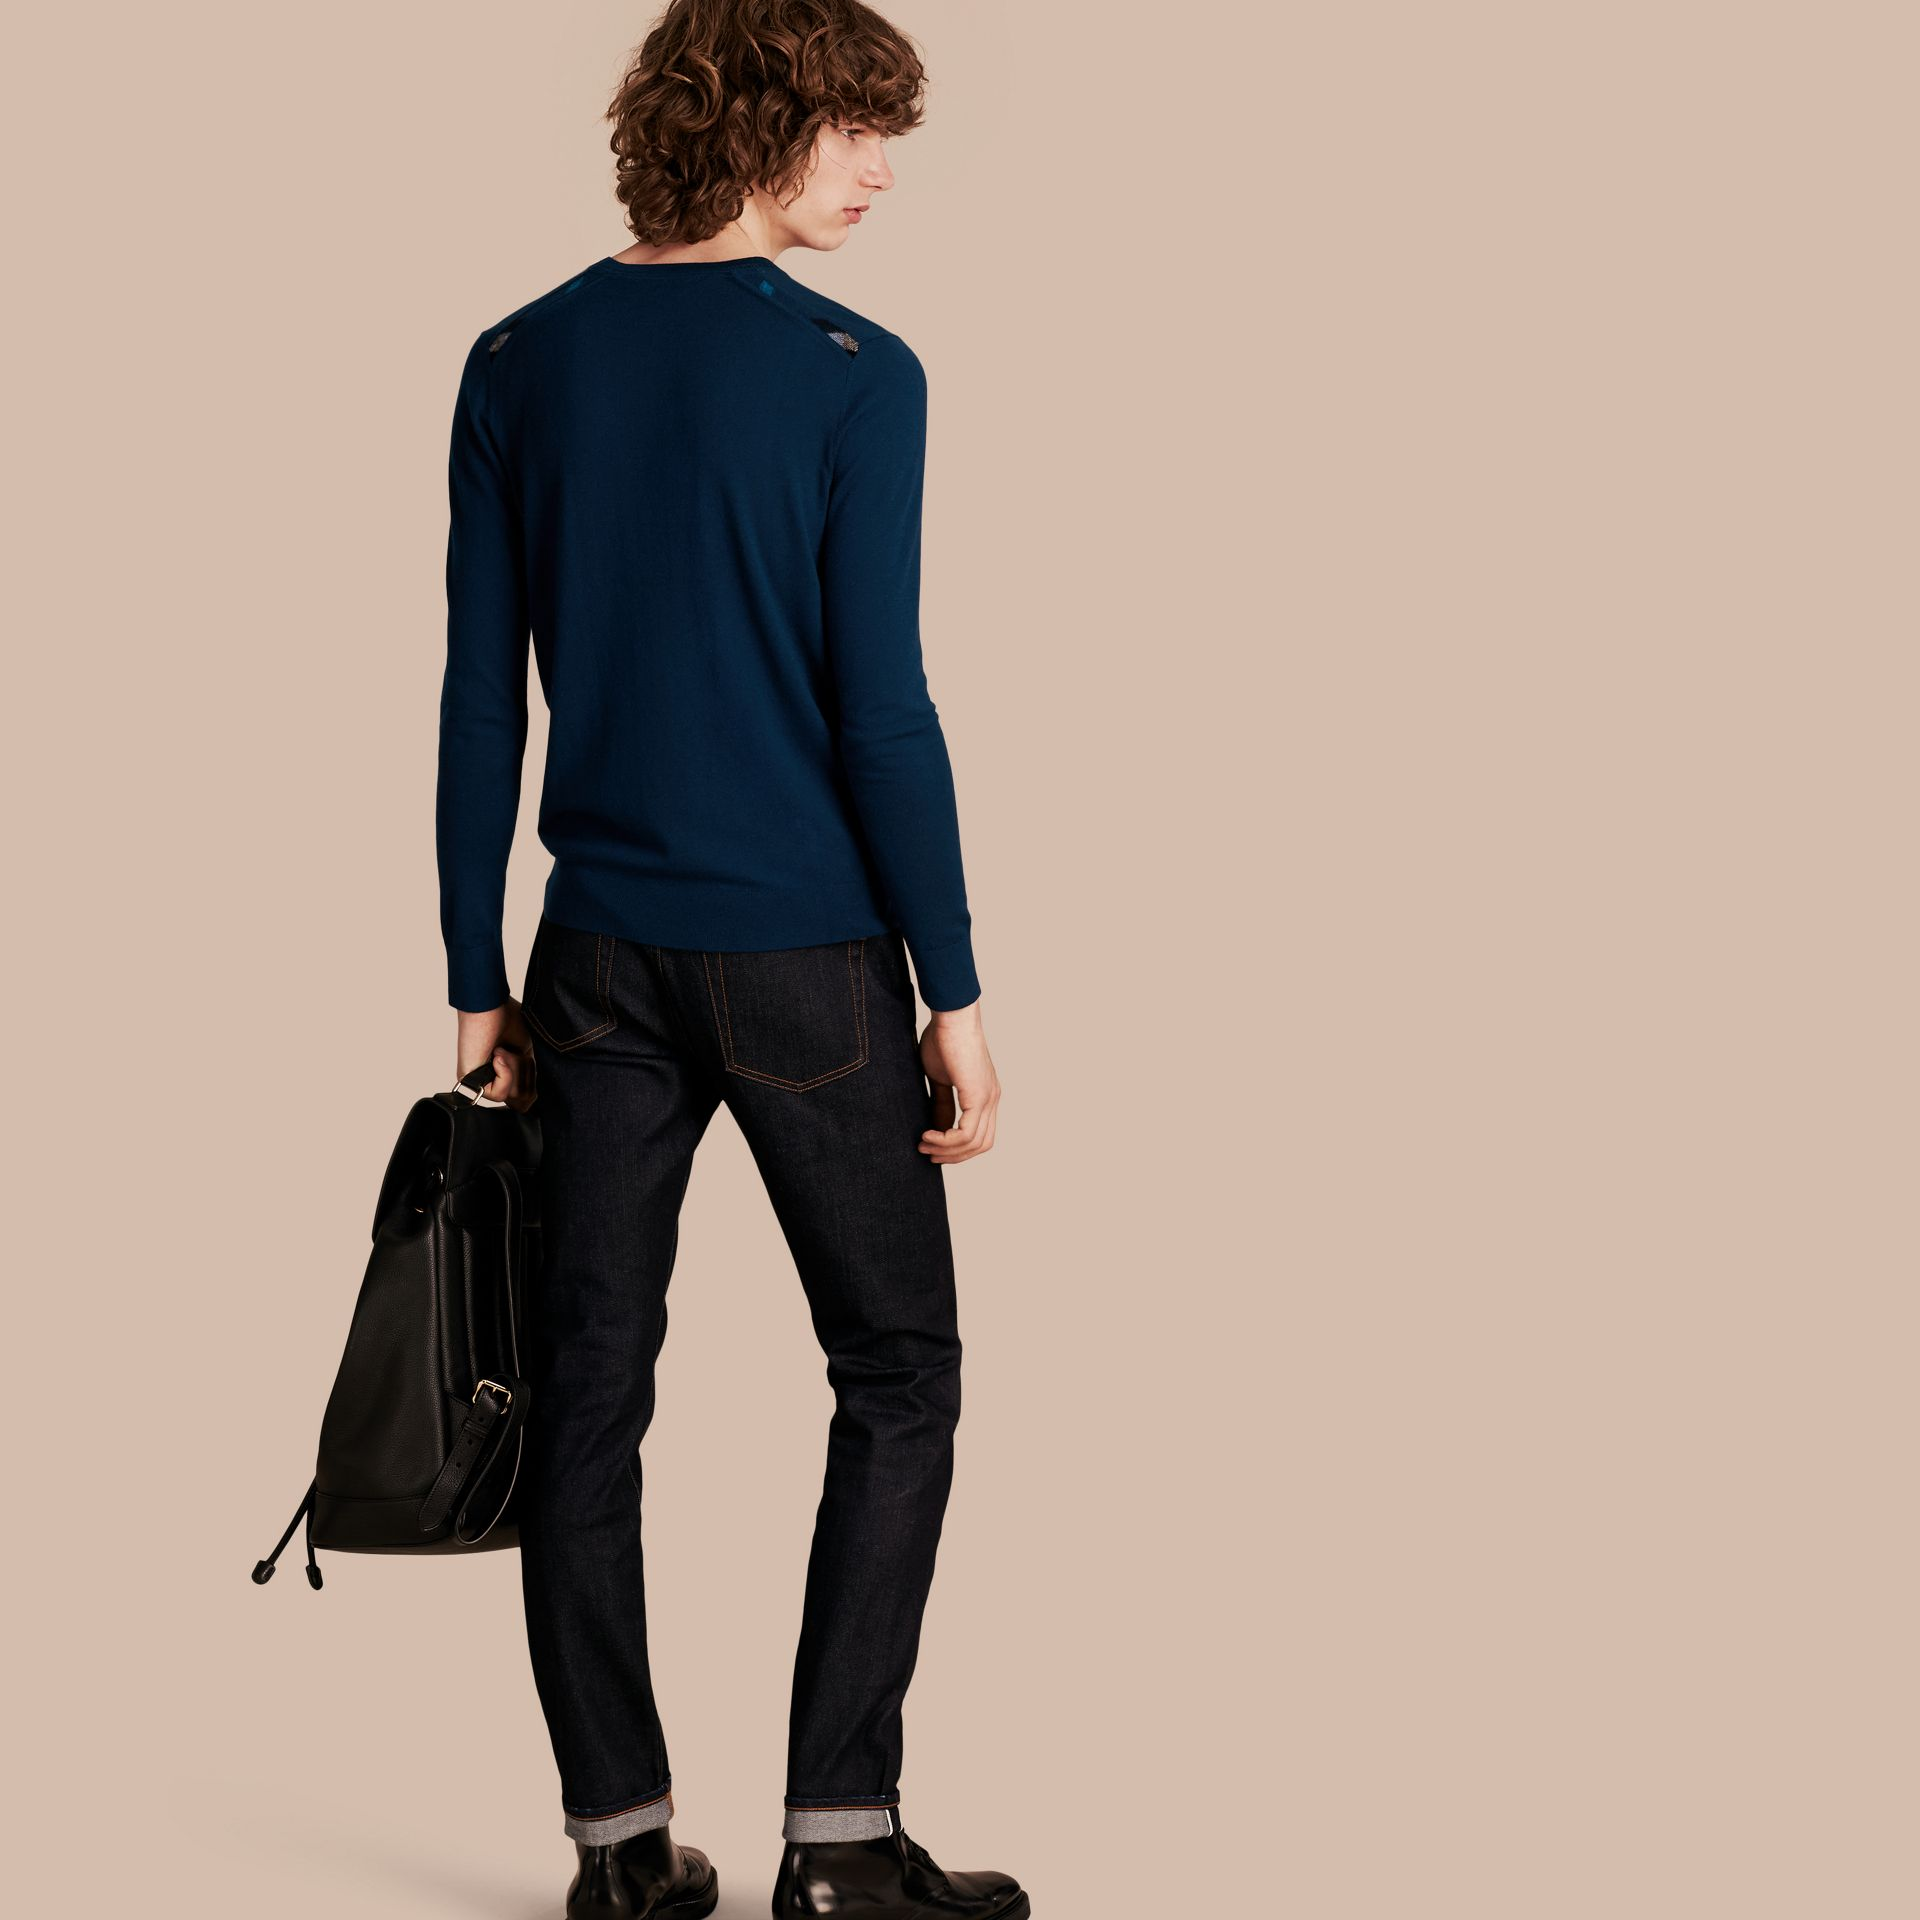 Lightweight Crew Neck Cashmere Sweater with Check Trim in Dark Teal - Men | Burberry - gallery image 1